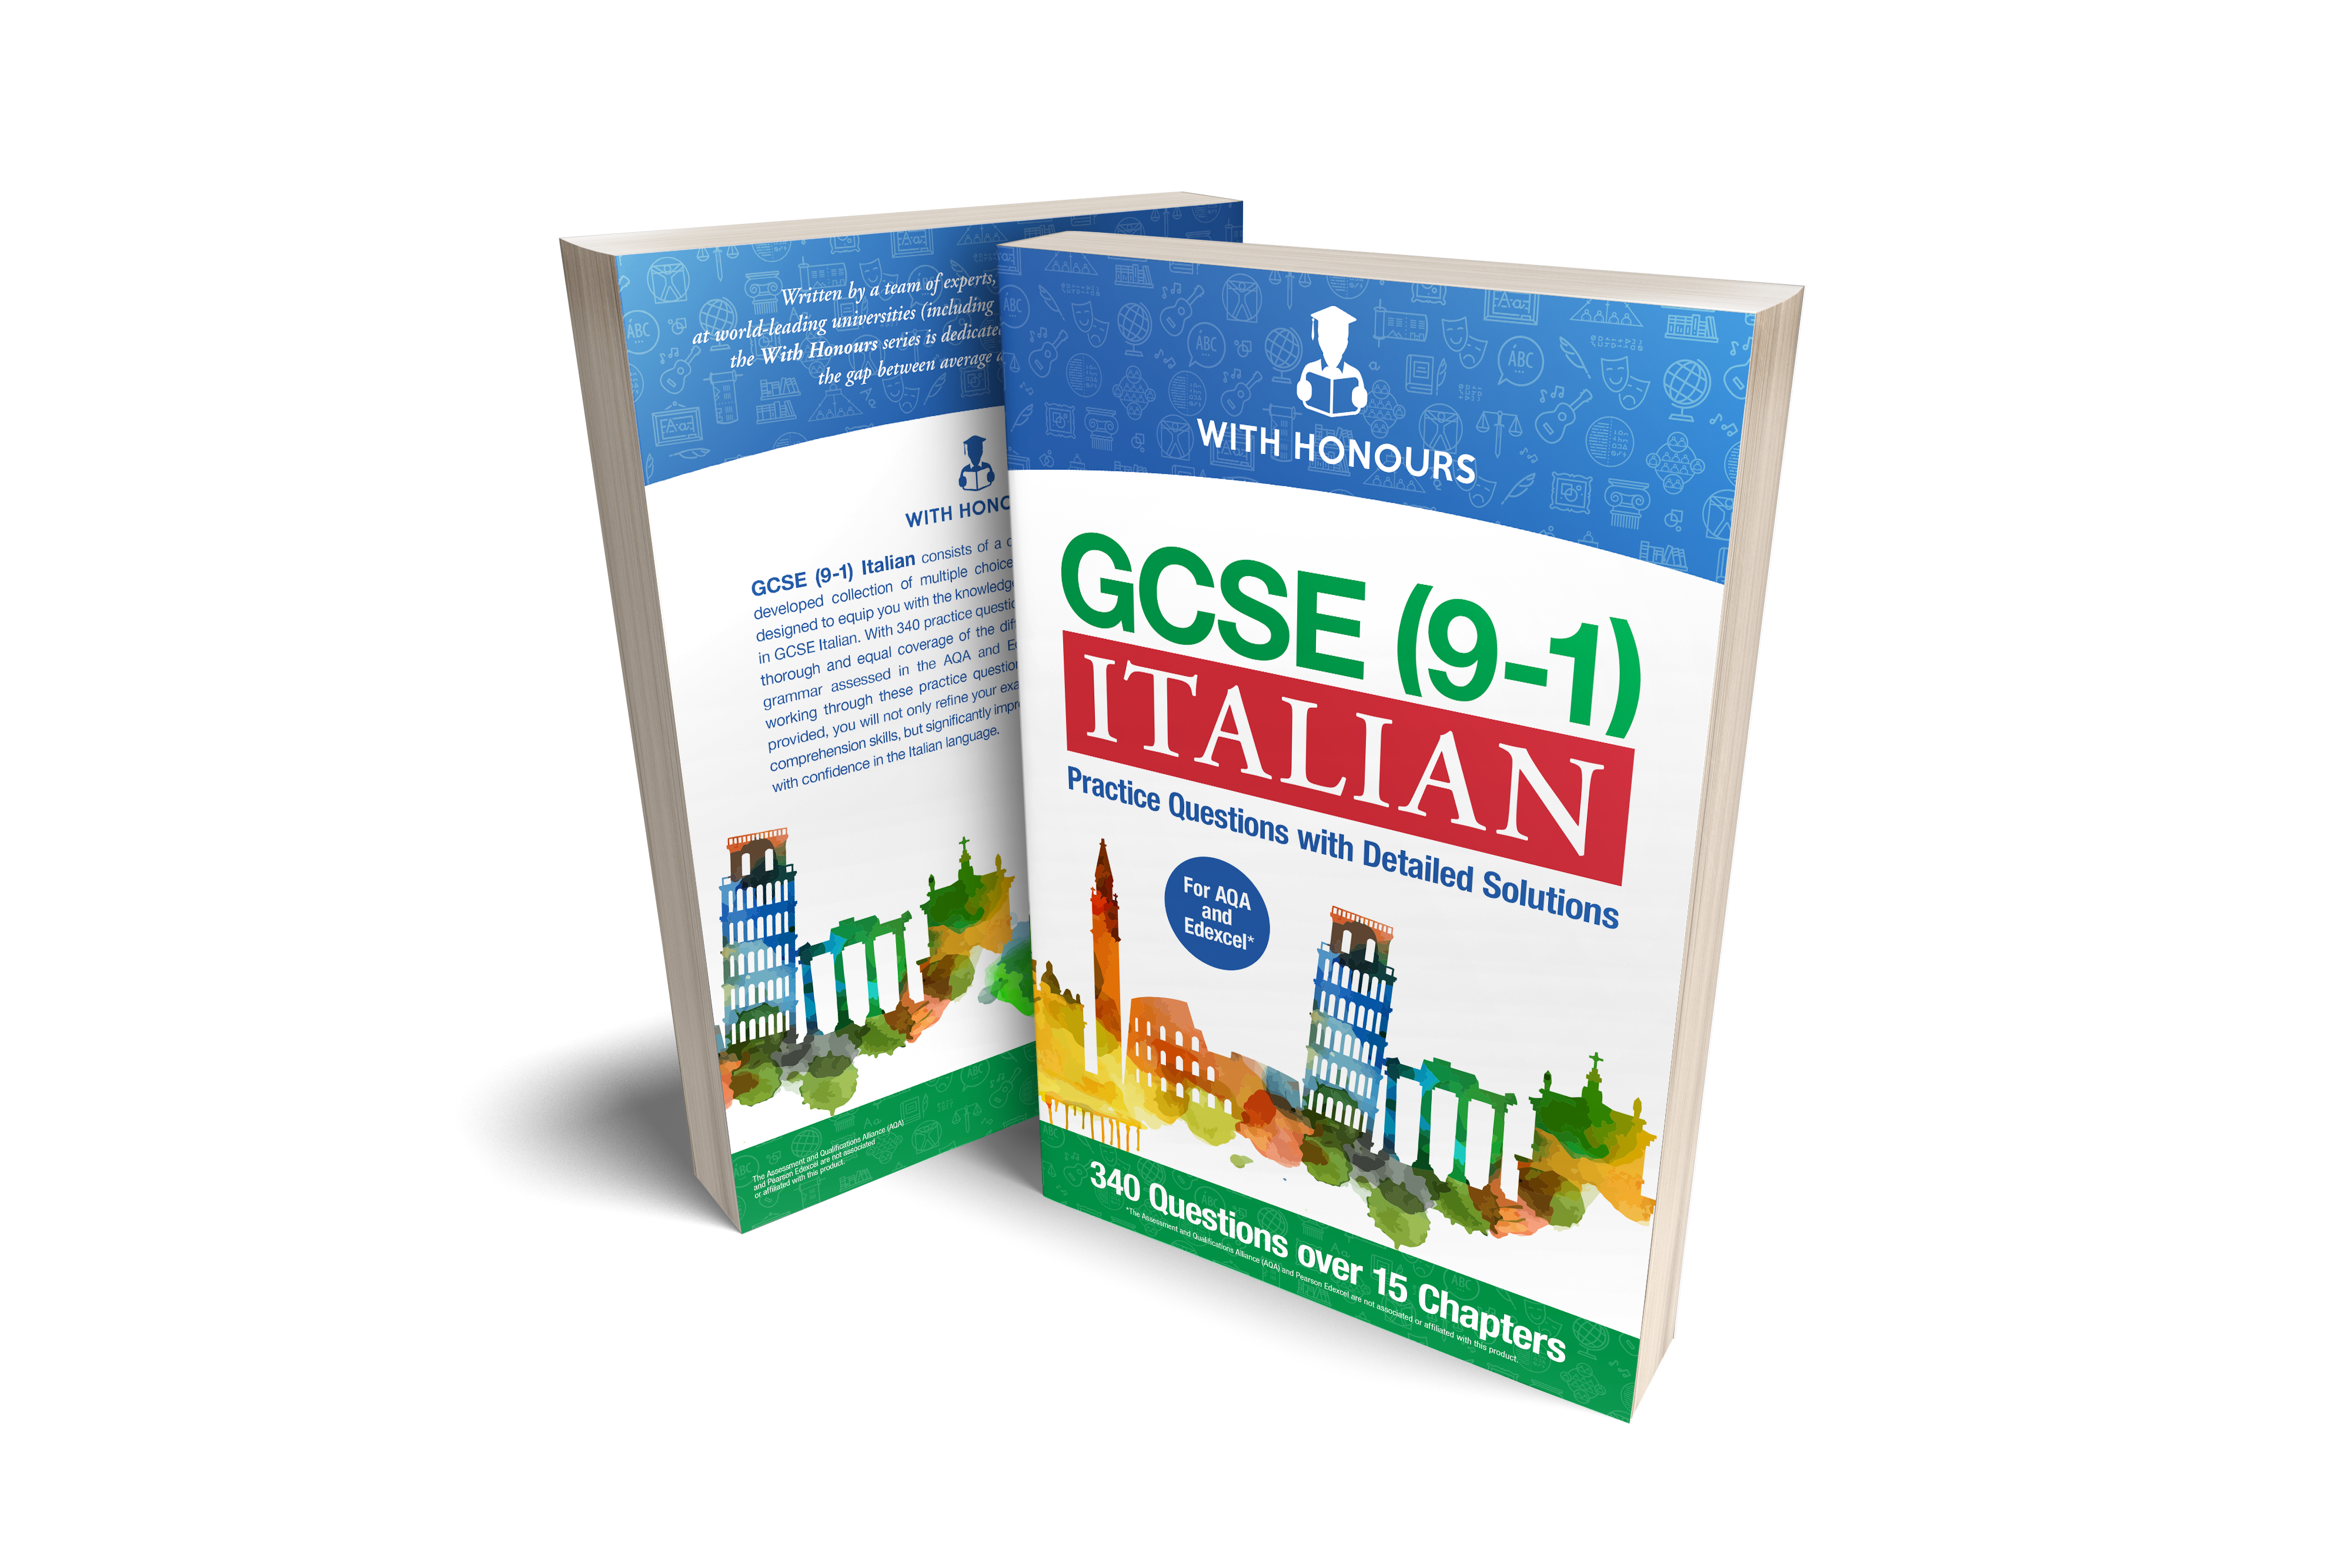 Book cover for 'GCSE (9-1) ITALIAN: Practice Questions with Detailed Solutions'